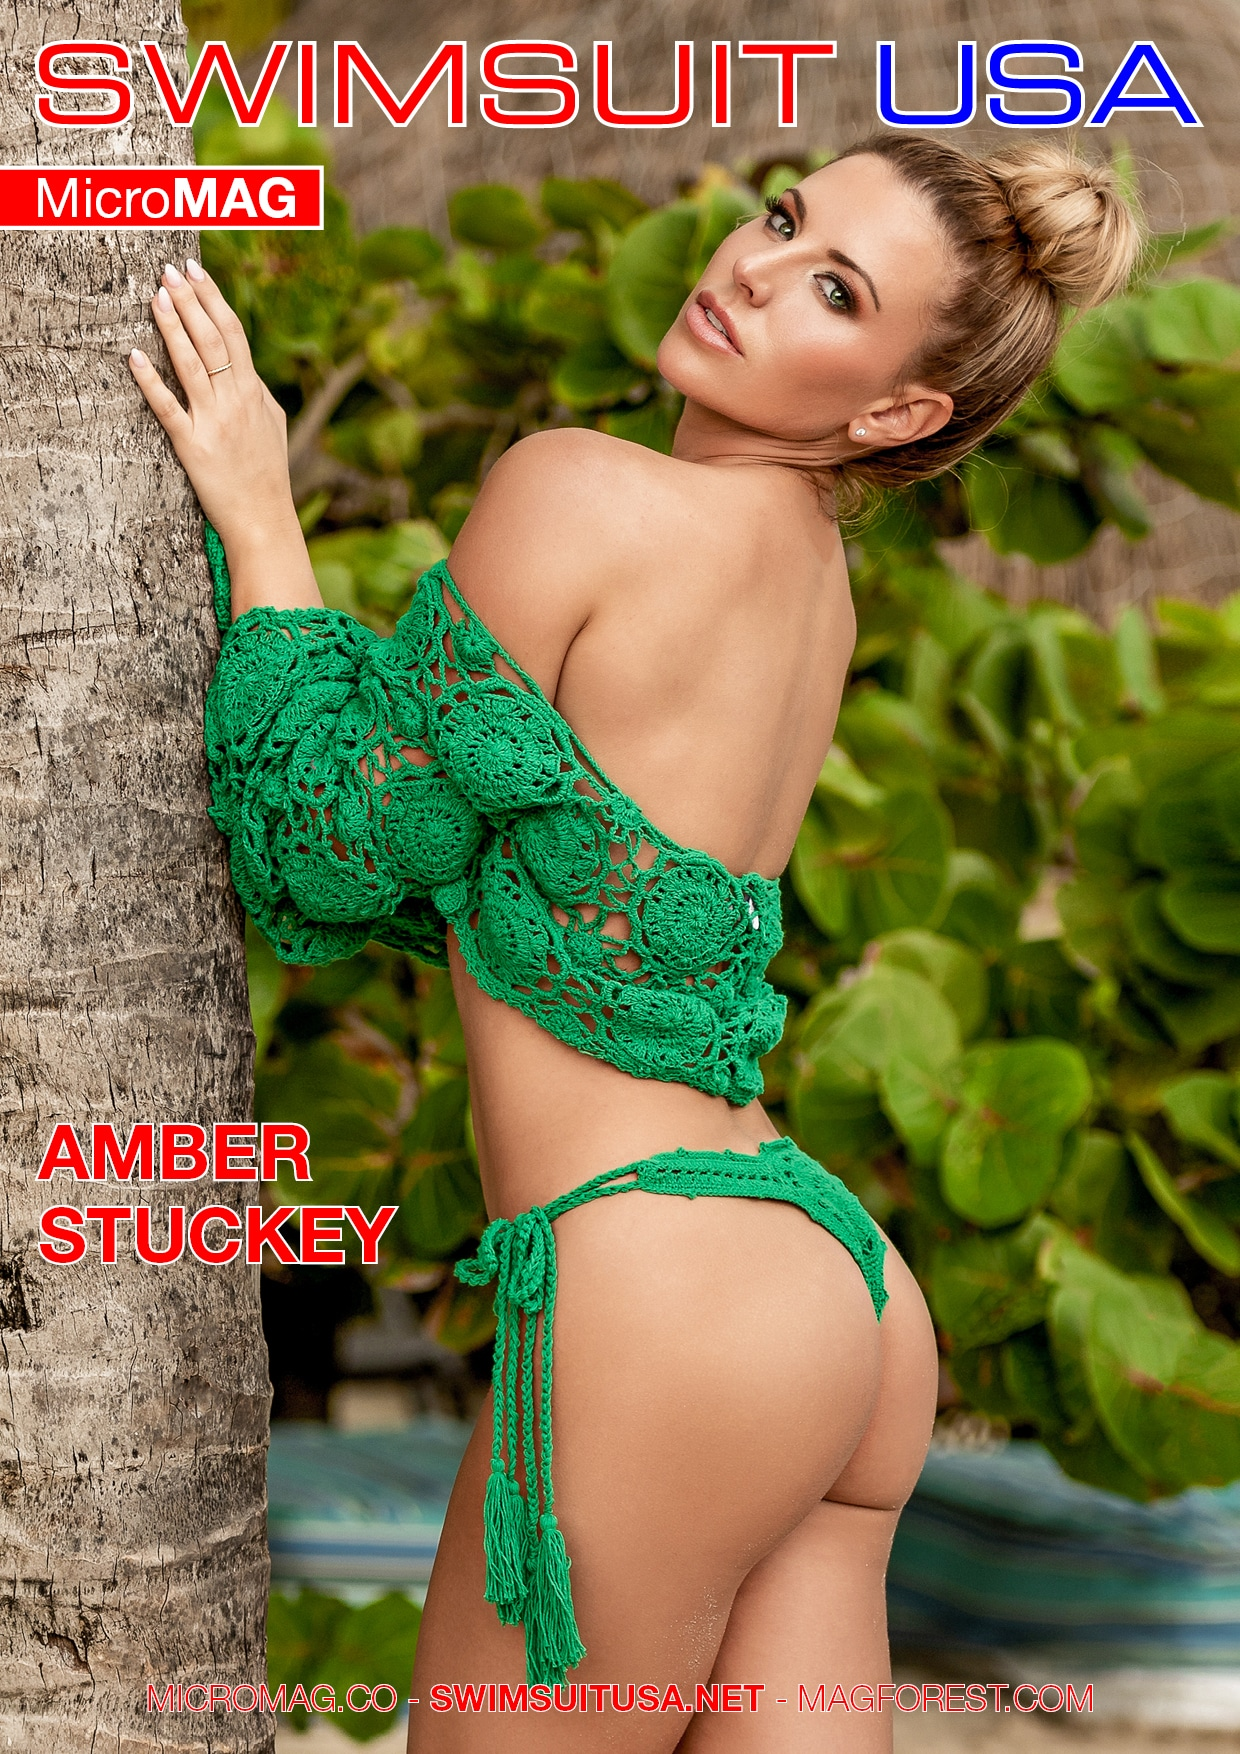 Dragon Magazine - February 2020 - Ivy Divino 5